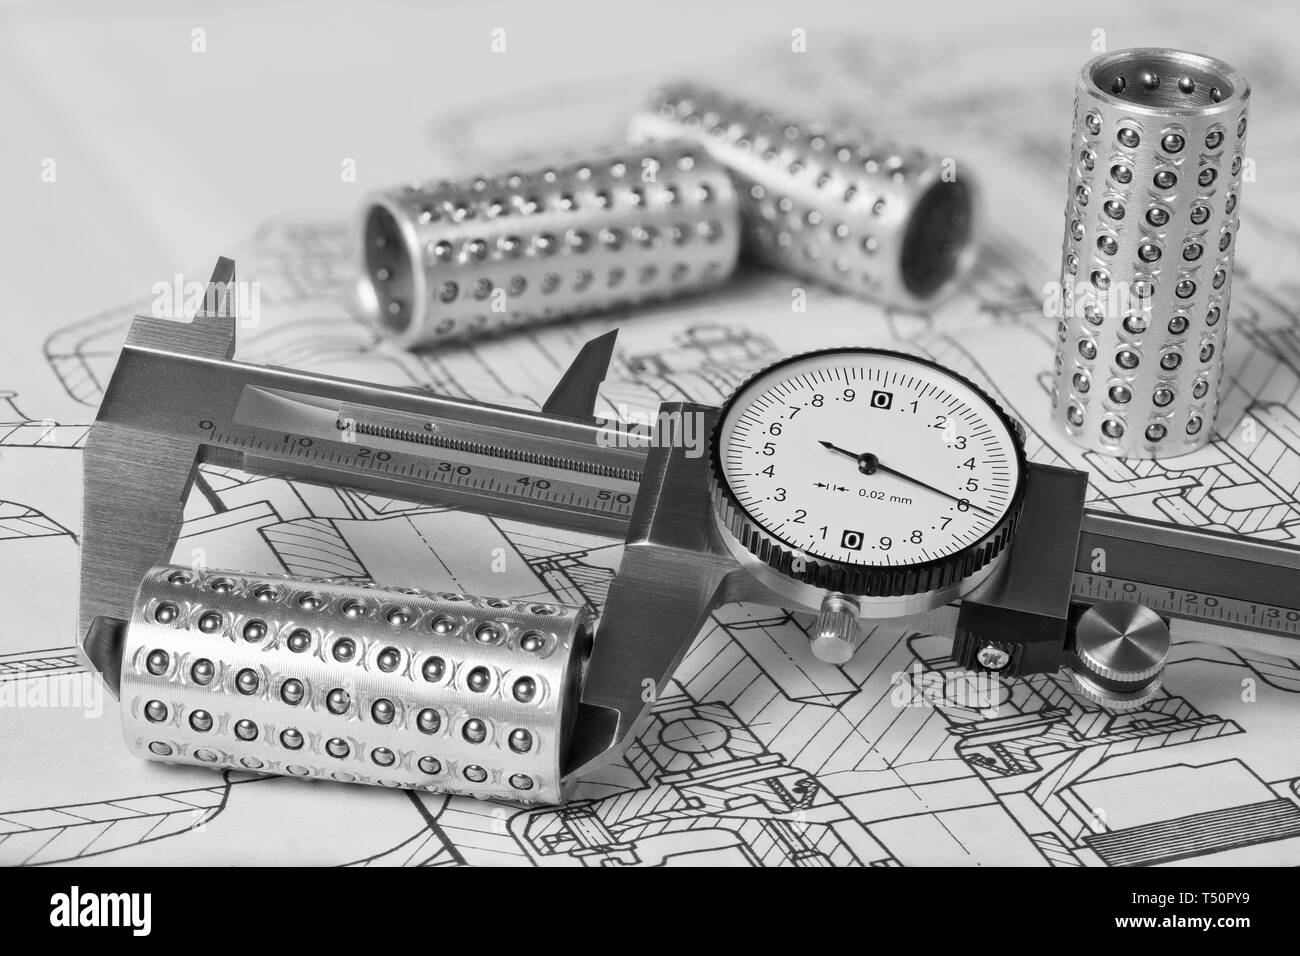 Caliper. Linear ball bearings. Plan. Measuring of metal rollers. Technical drawing. Metallic gauge with vernier scale and round dial. Steel part group. - Stock Image